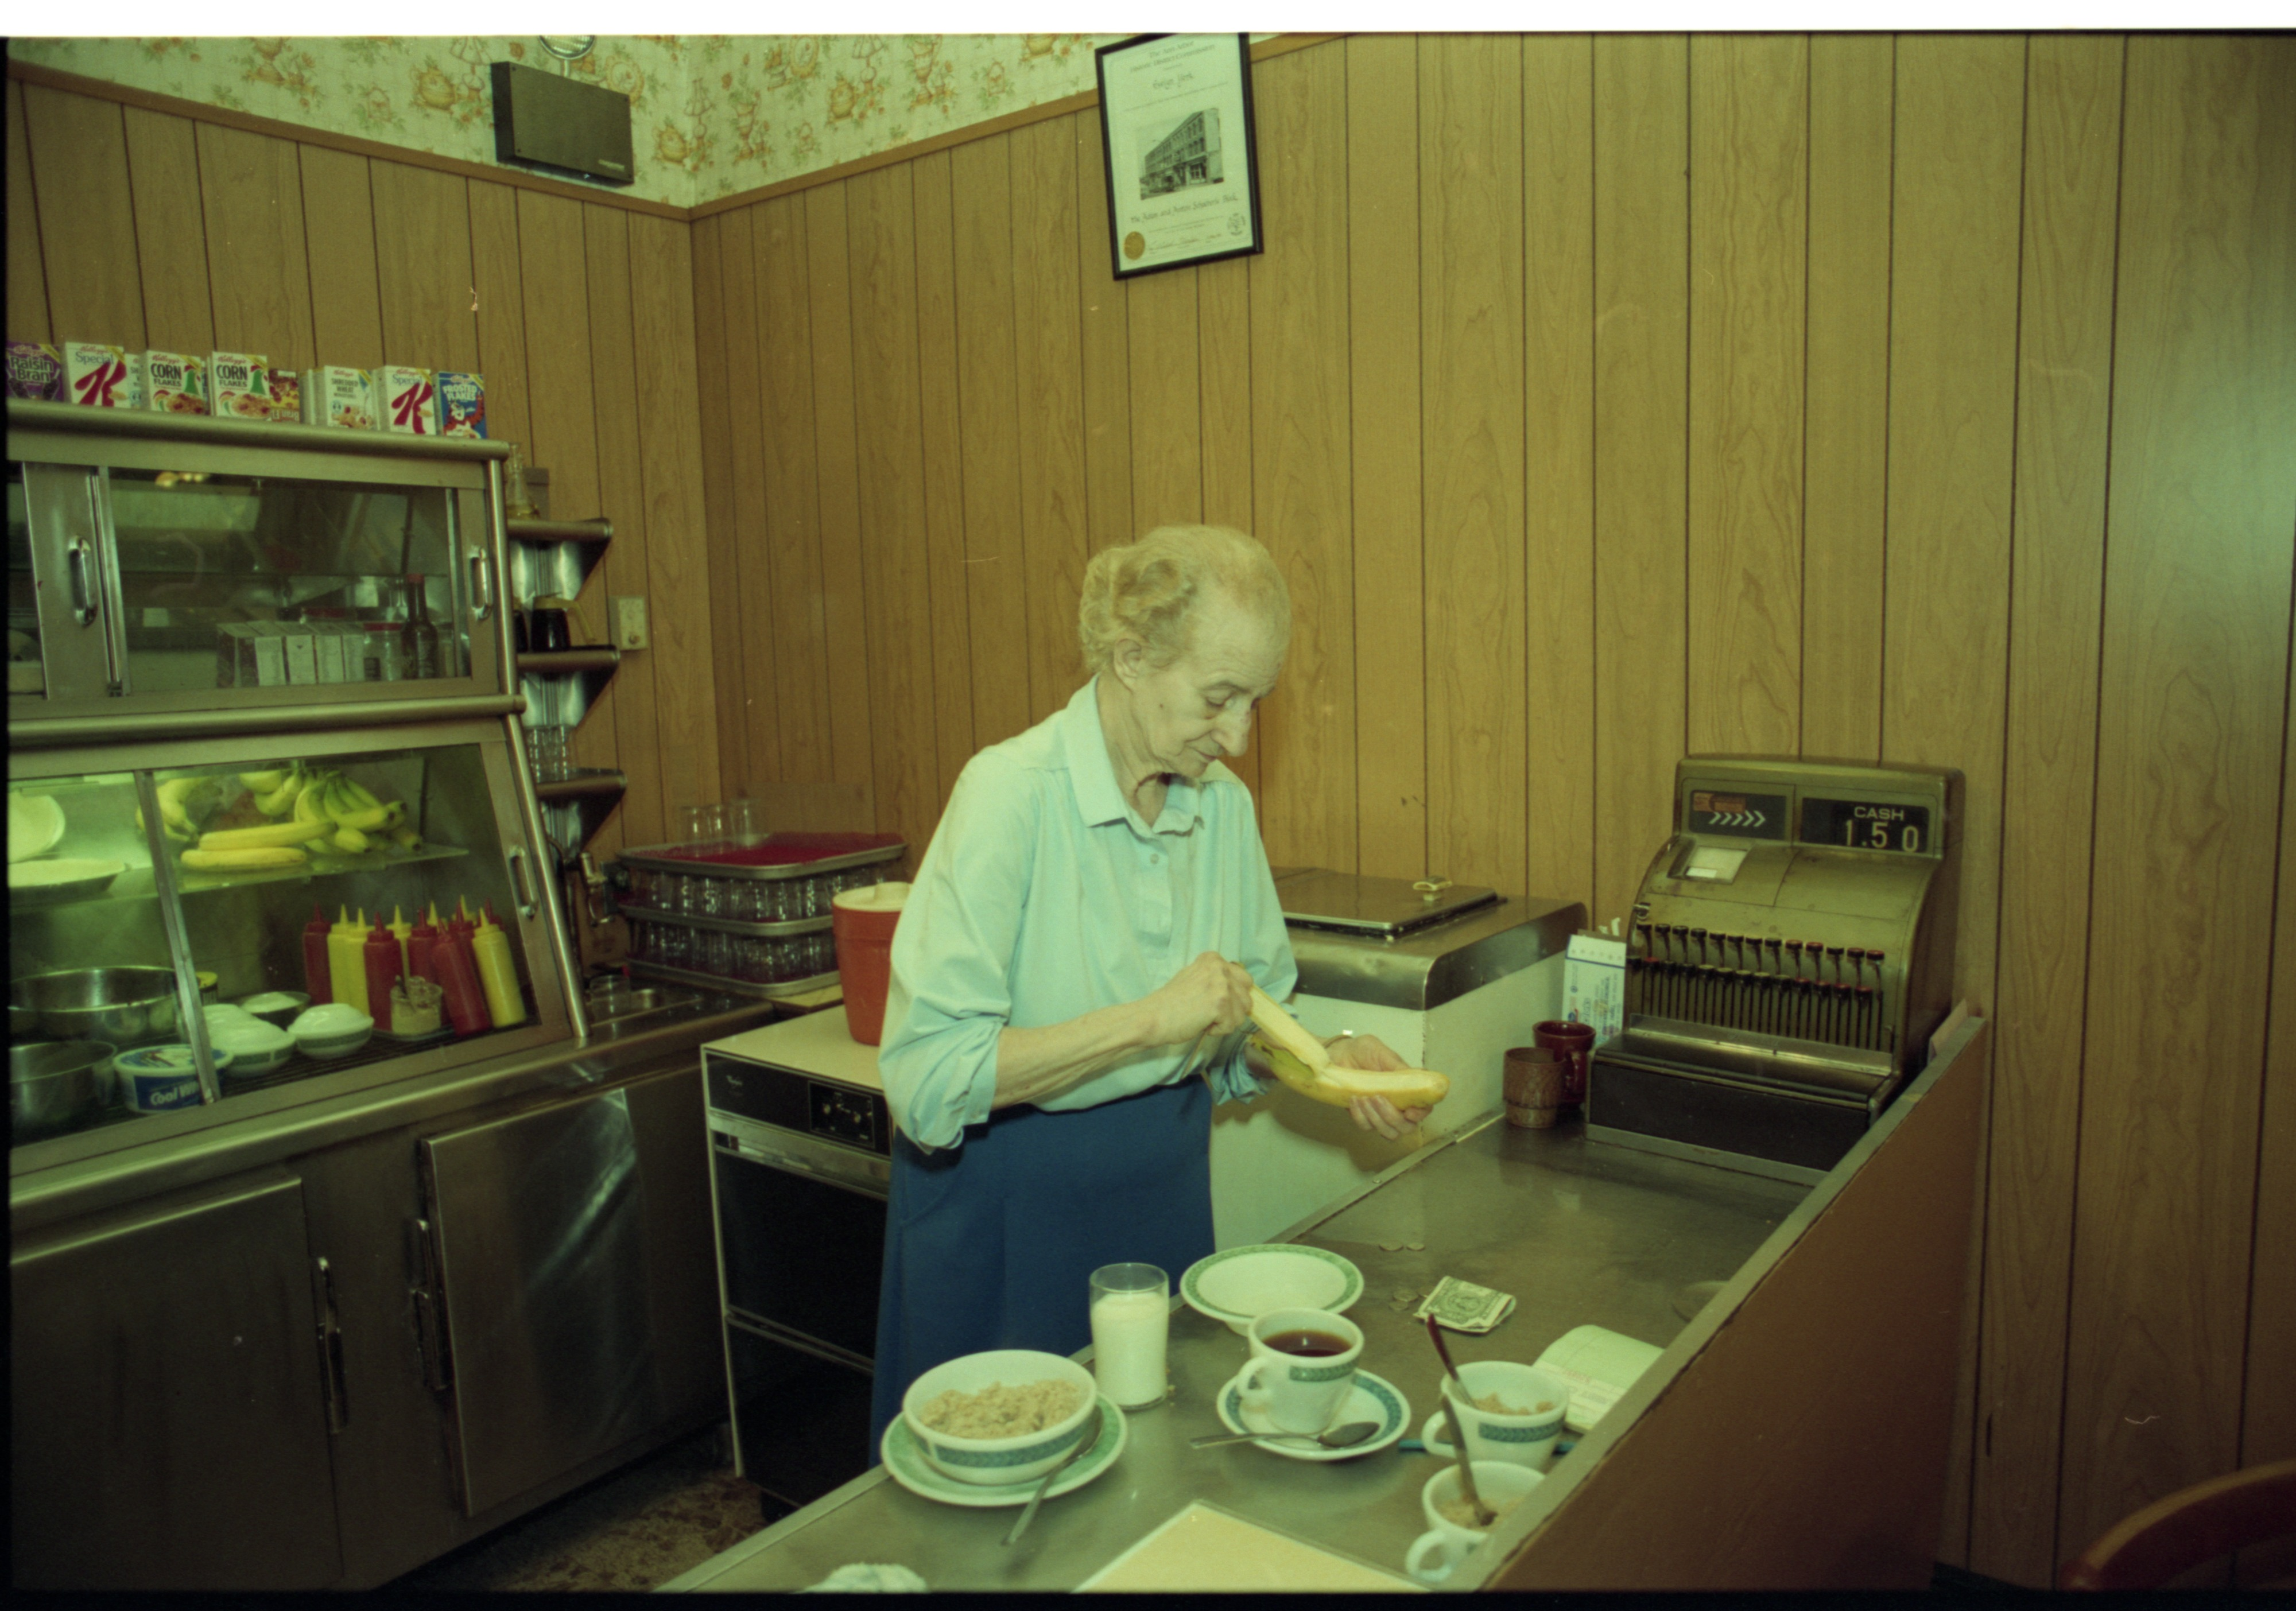 Roundtable Restaurant Owner Evelyn Stack Still Prepares and Serves Meals, May 1993 image